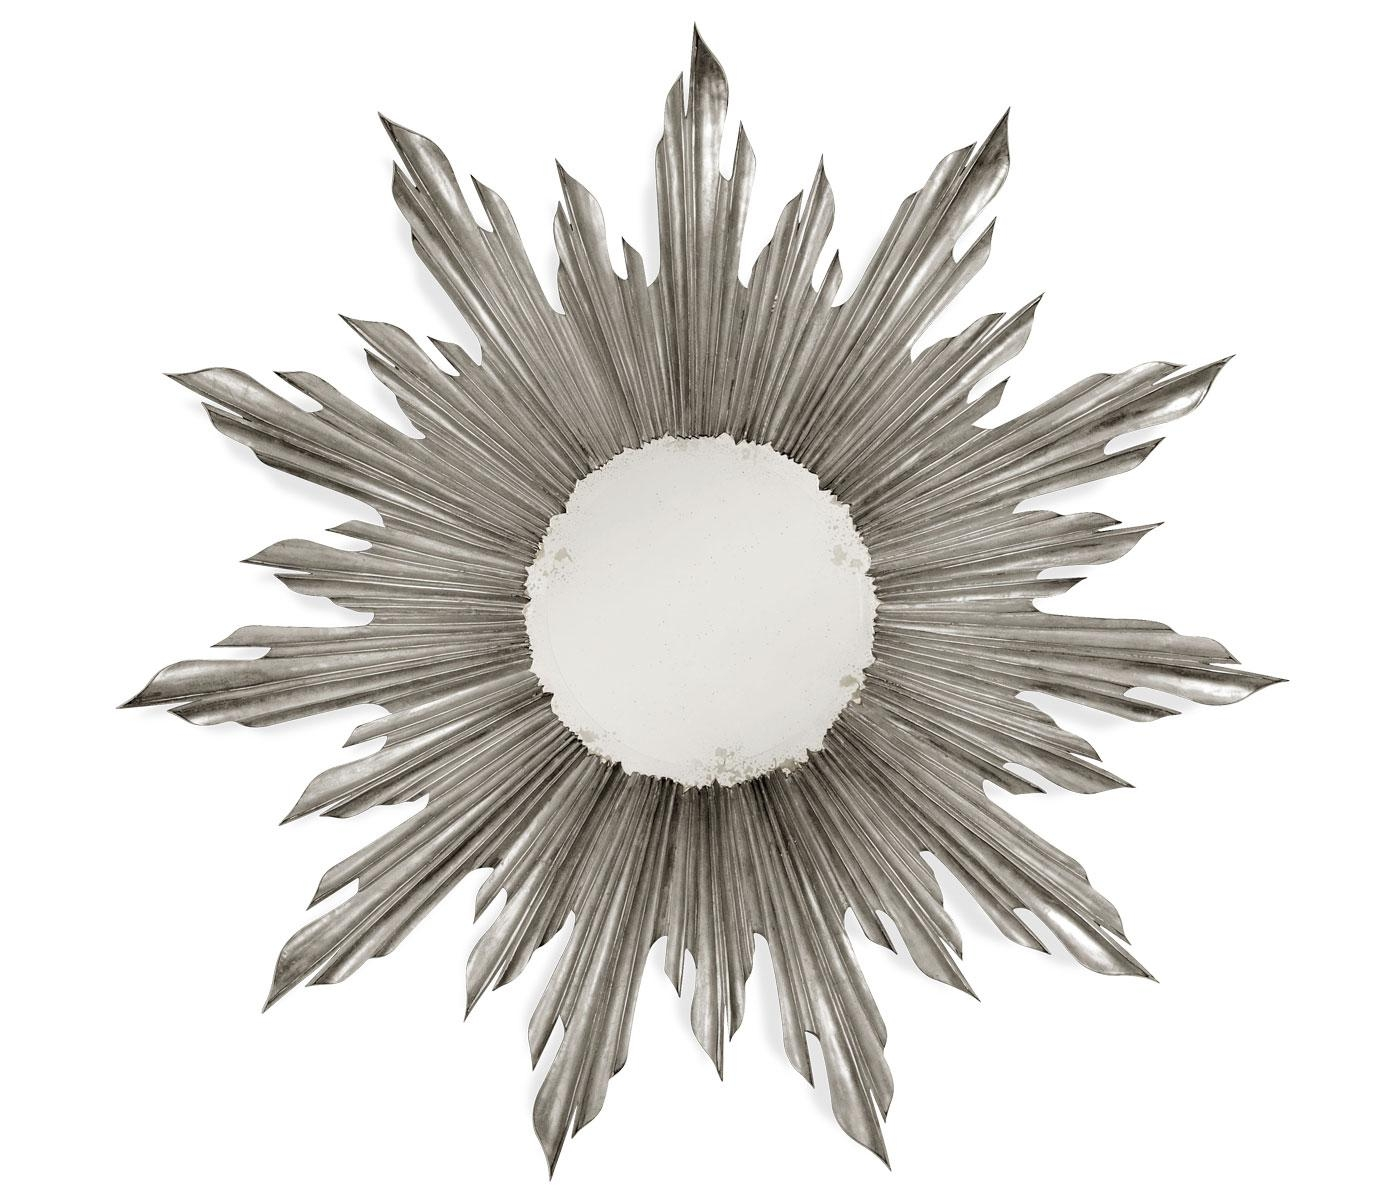 Silver Sunburst Mirror Regarding Small Silver Mirrors (Image 16 of 20)